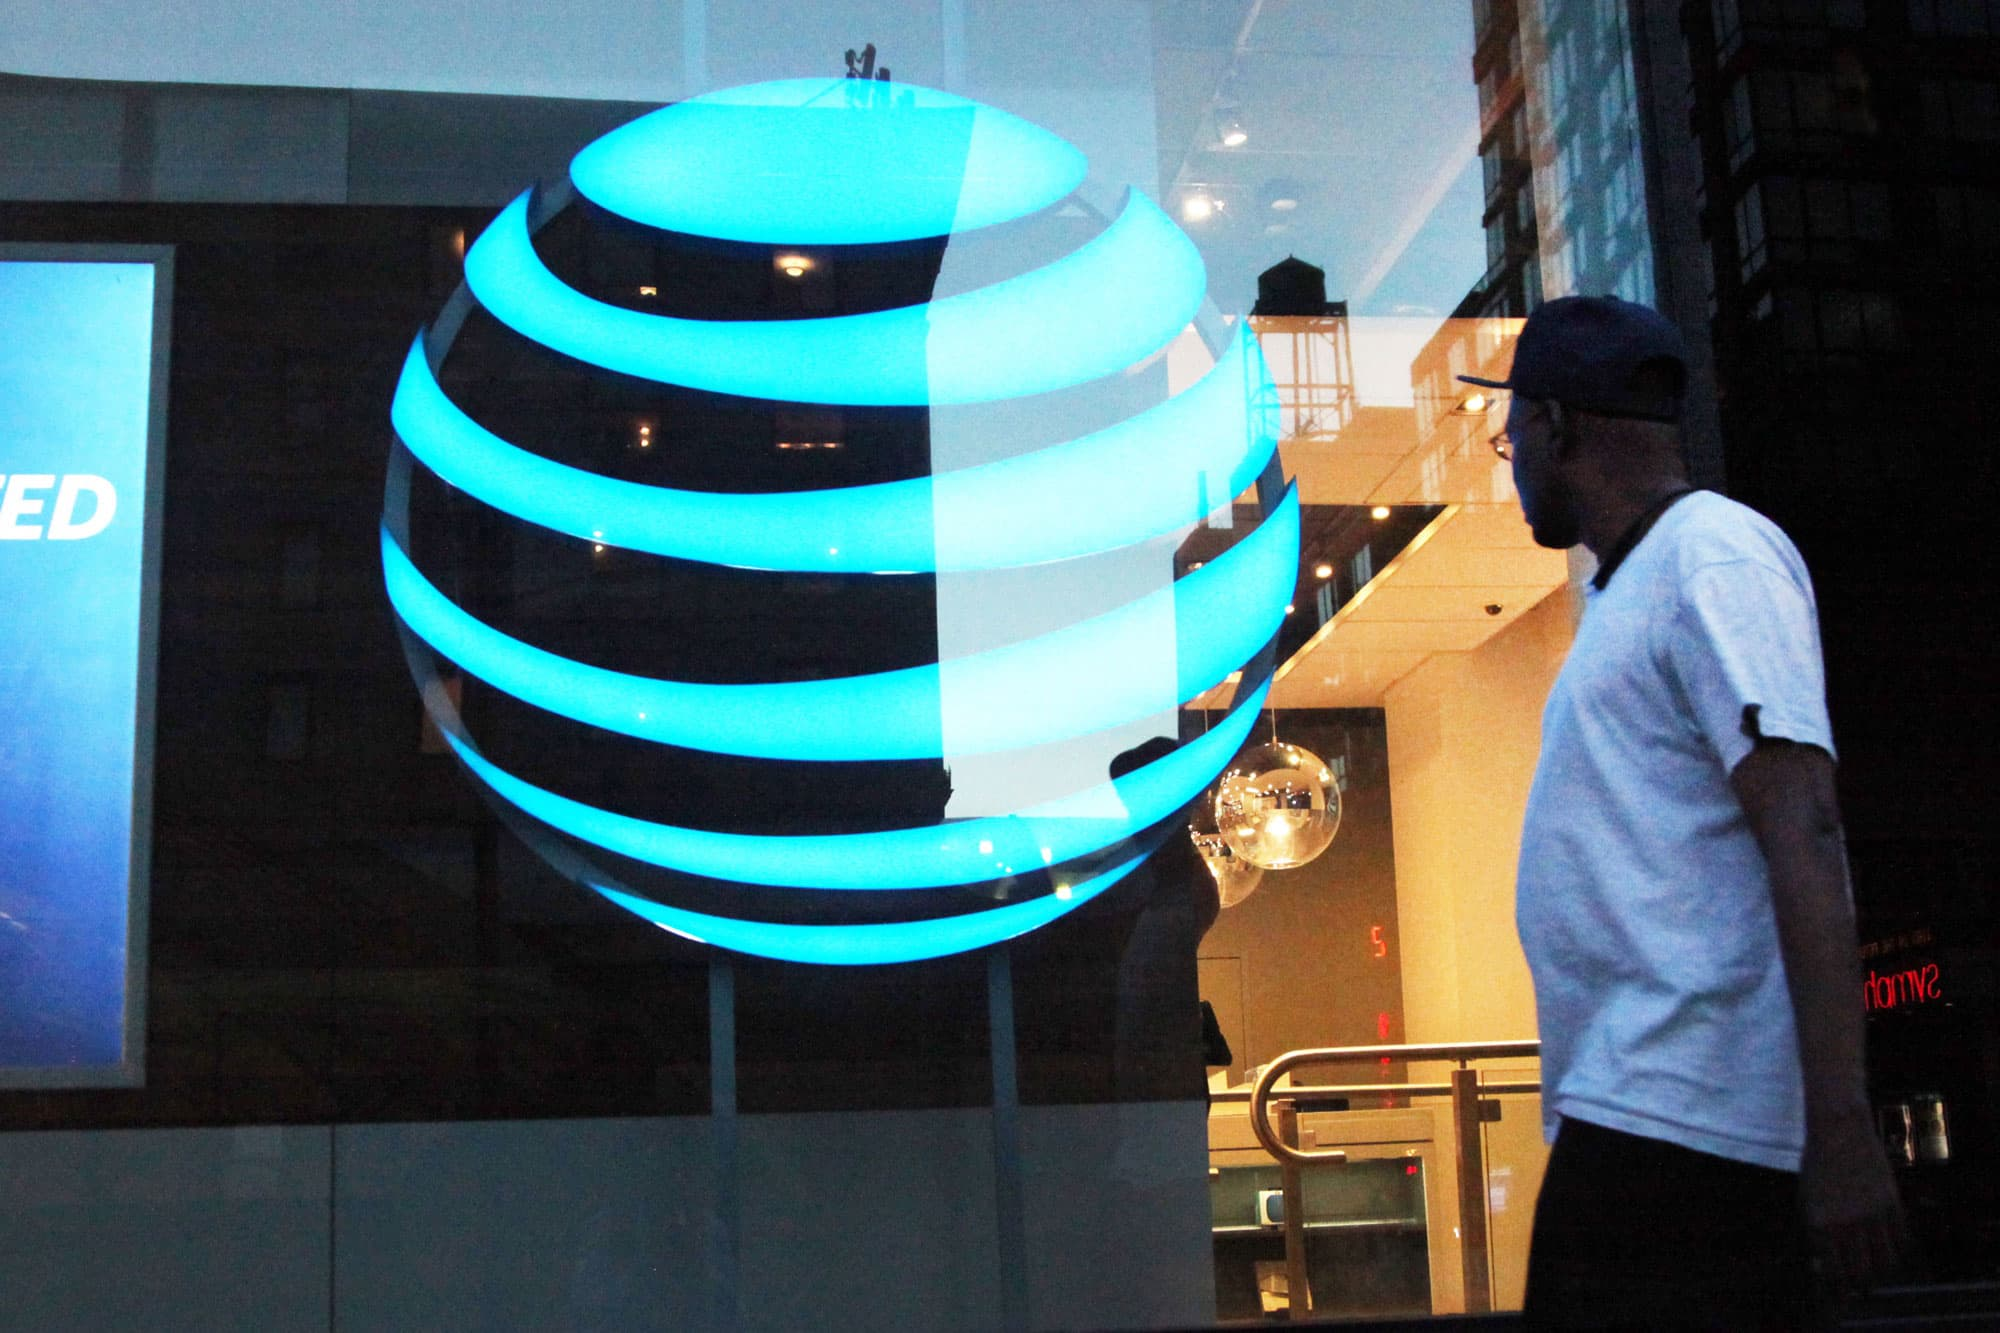 AT&T to pay $60 million over US allegations it lied in its 'unlimited data' promises